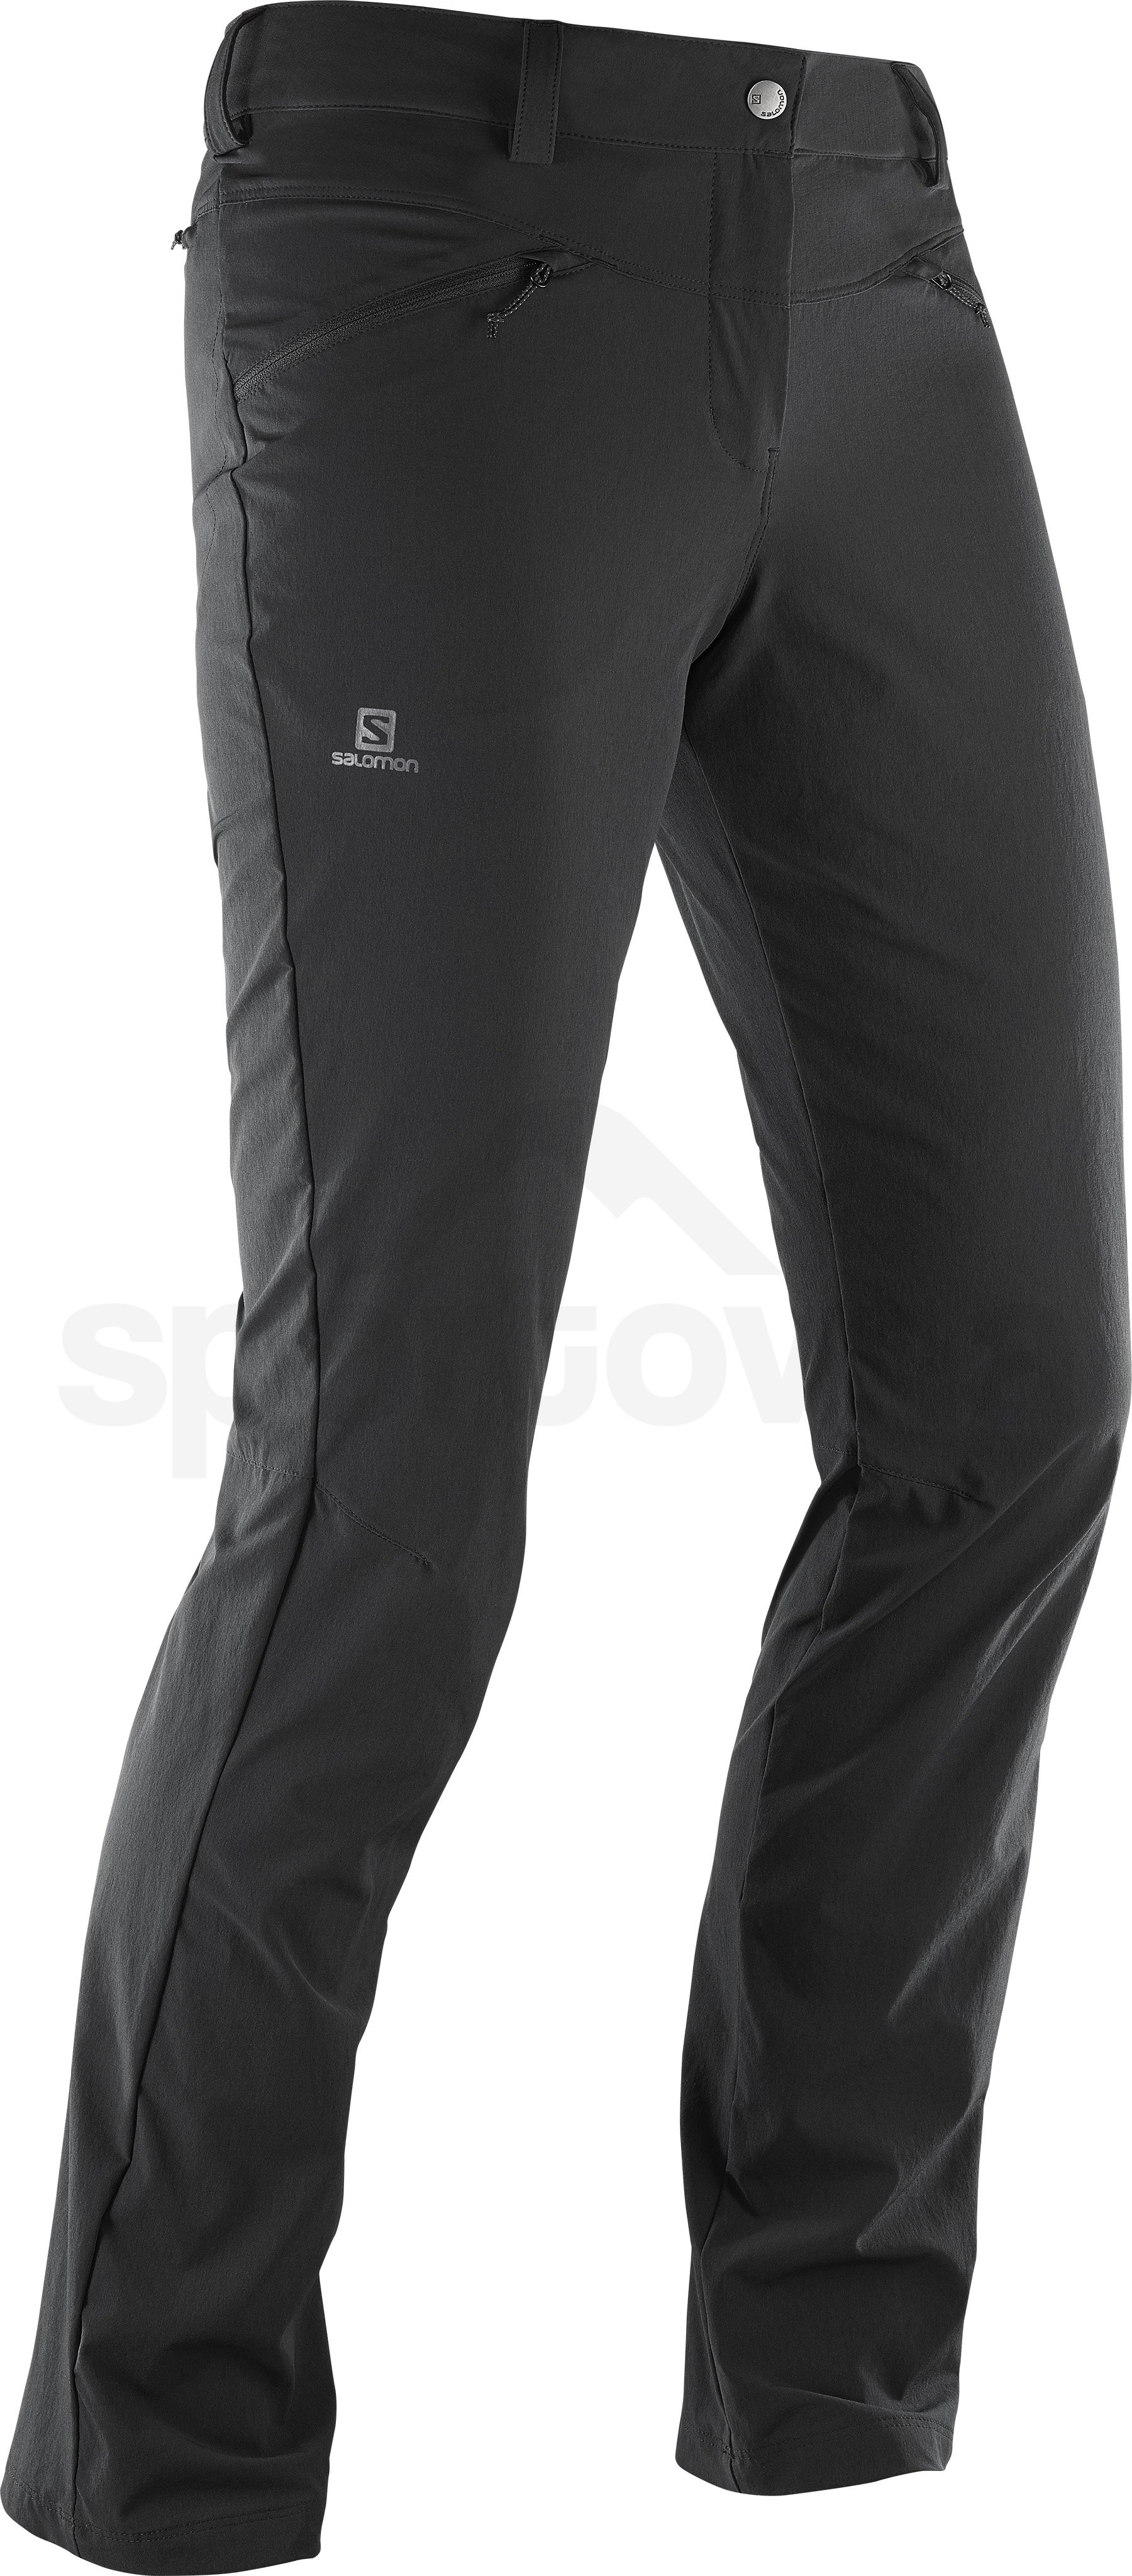 L40218700_2_w_wayfarerltpant_black_outdoor.jpg.originalr